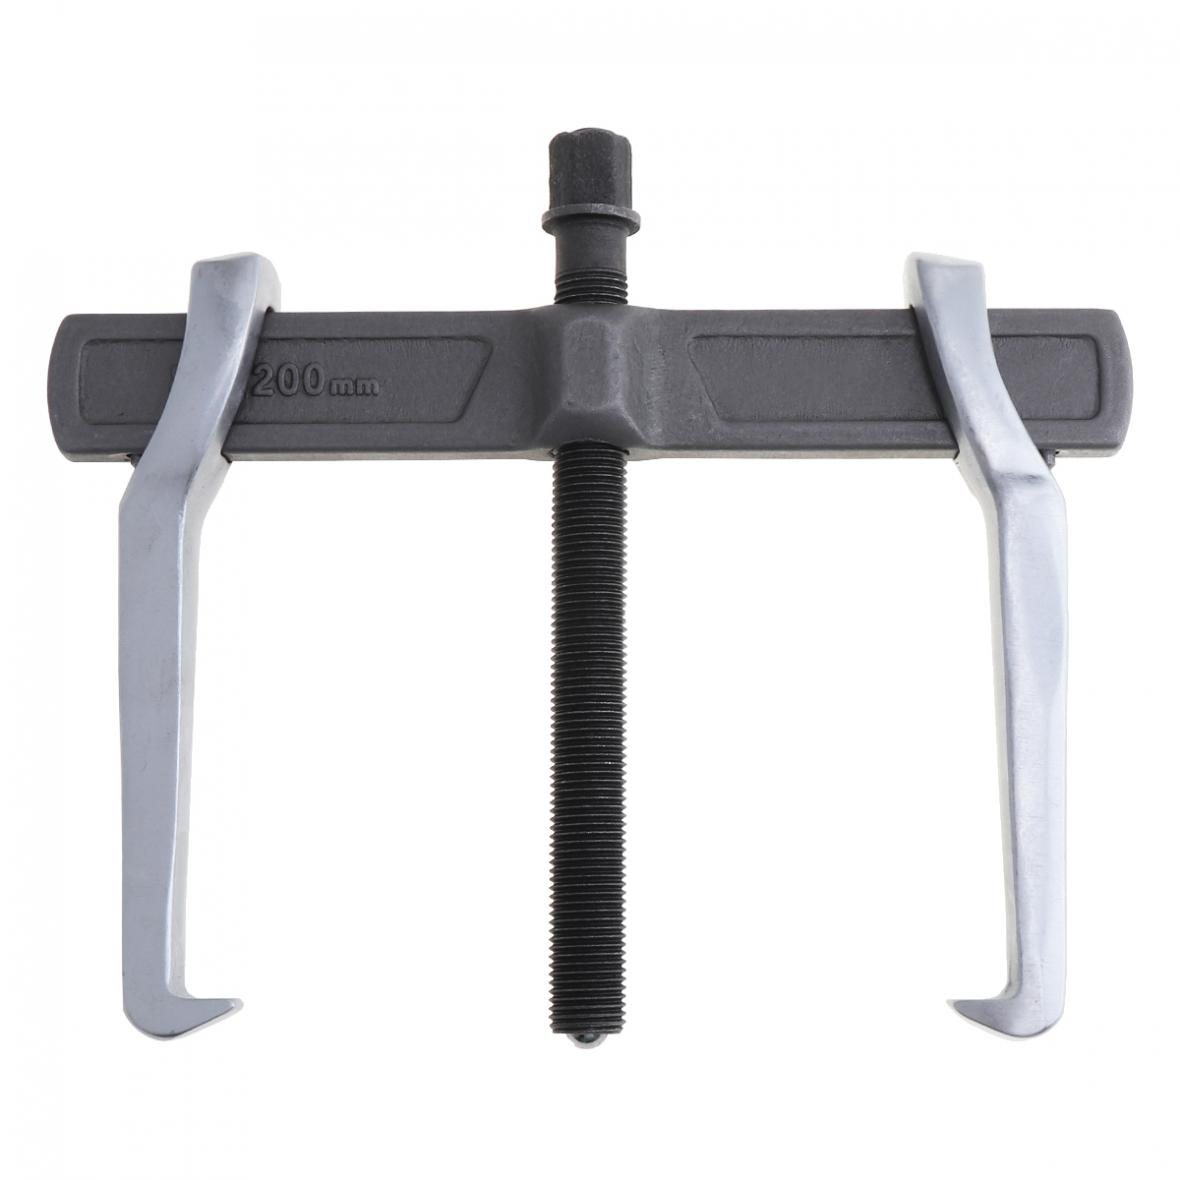 Rama Car Device Repair Lifting Single Auto Hook Tools Inch Strengthen Bearing For Two V 8 Puller Puller Separate Hand CR Claws